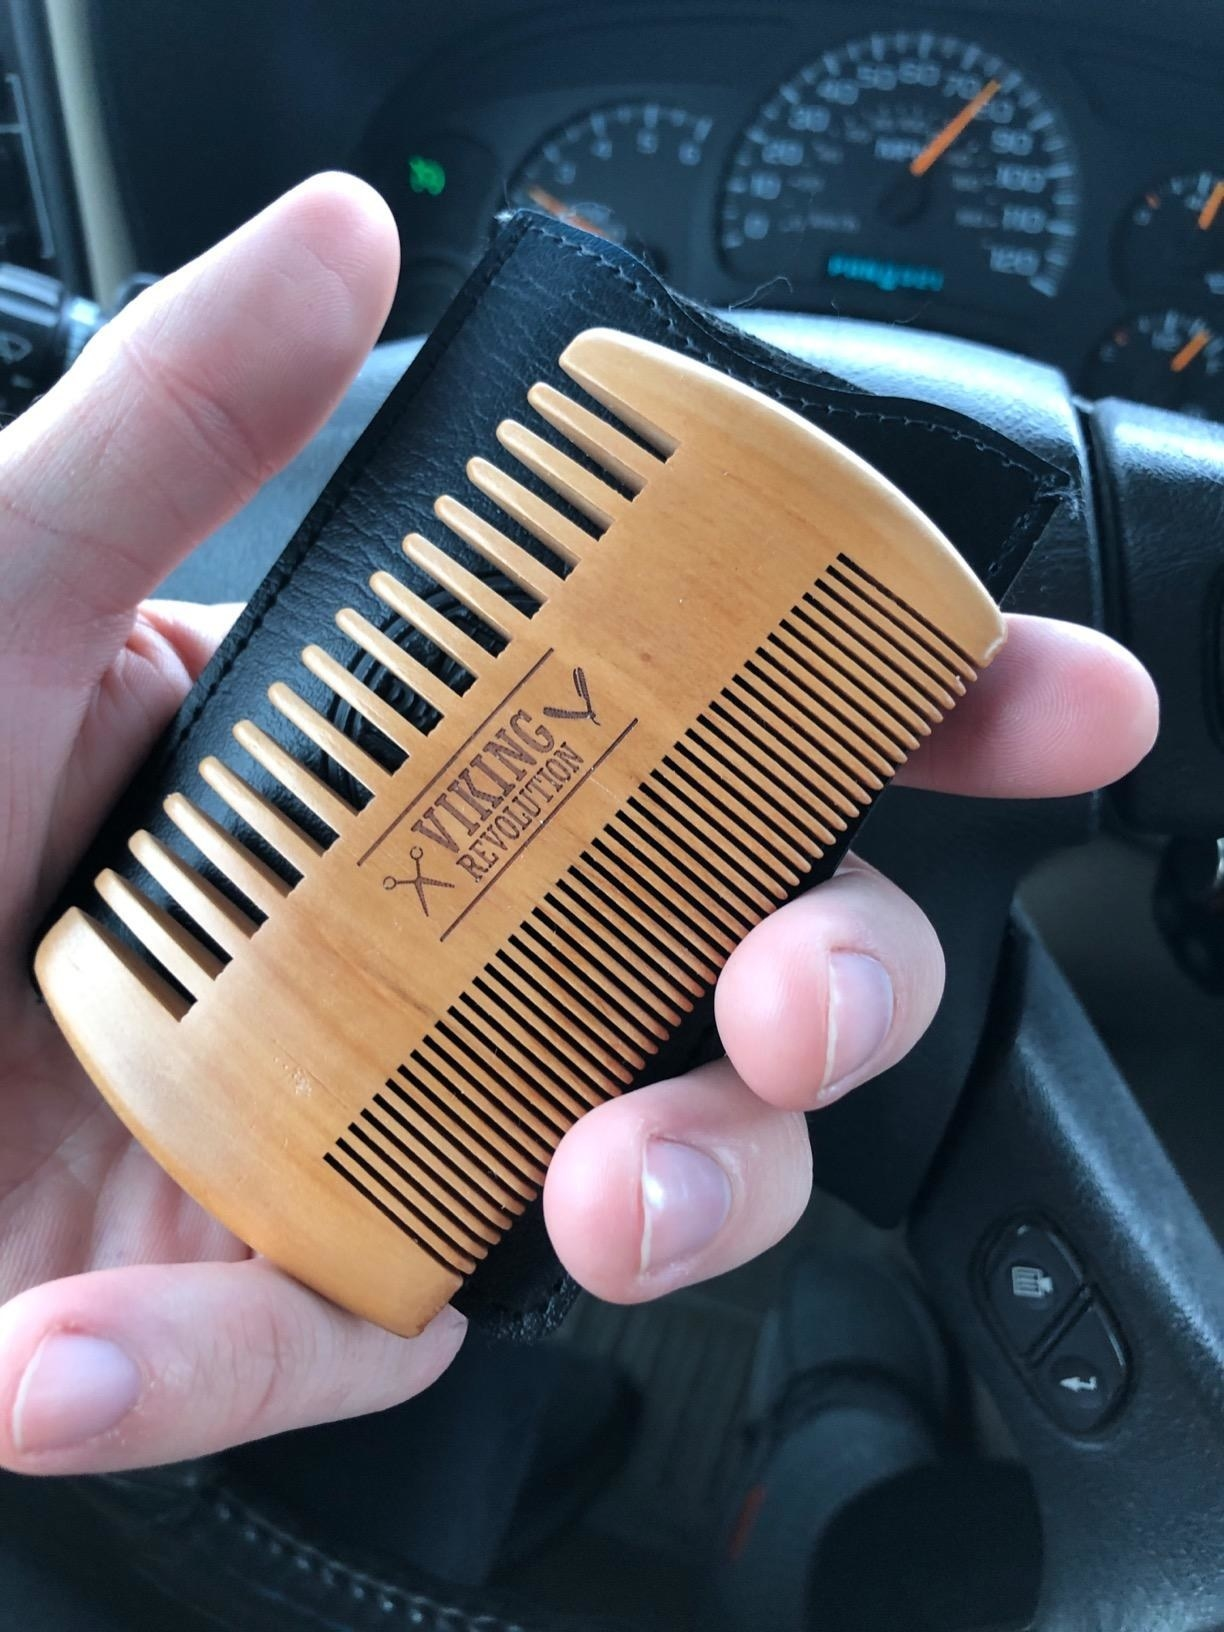 A reviewer's hand holding a light brown wooden comb and a black leather carrying case